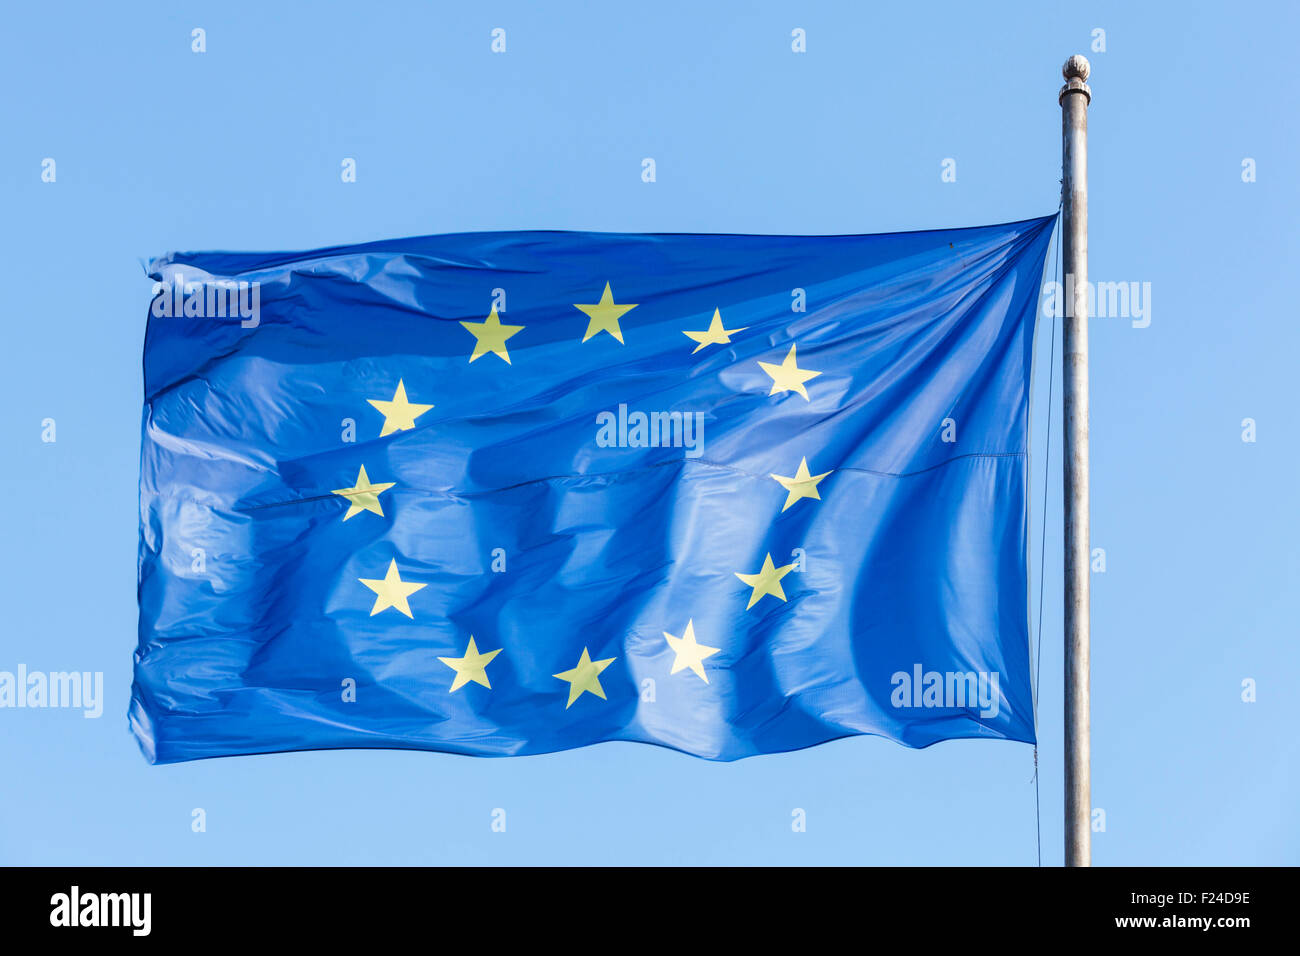 EU flag flying against a blue sky fluttering in the wind - Stock Image